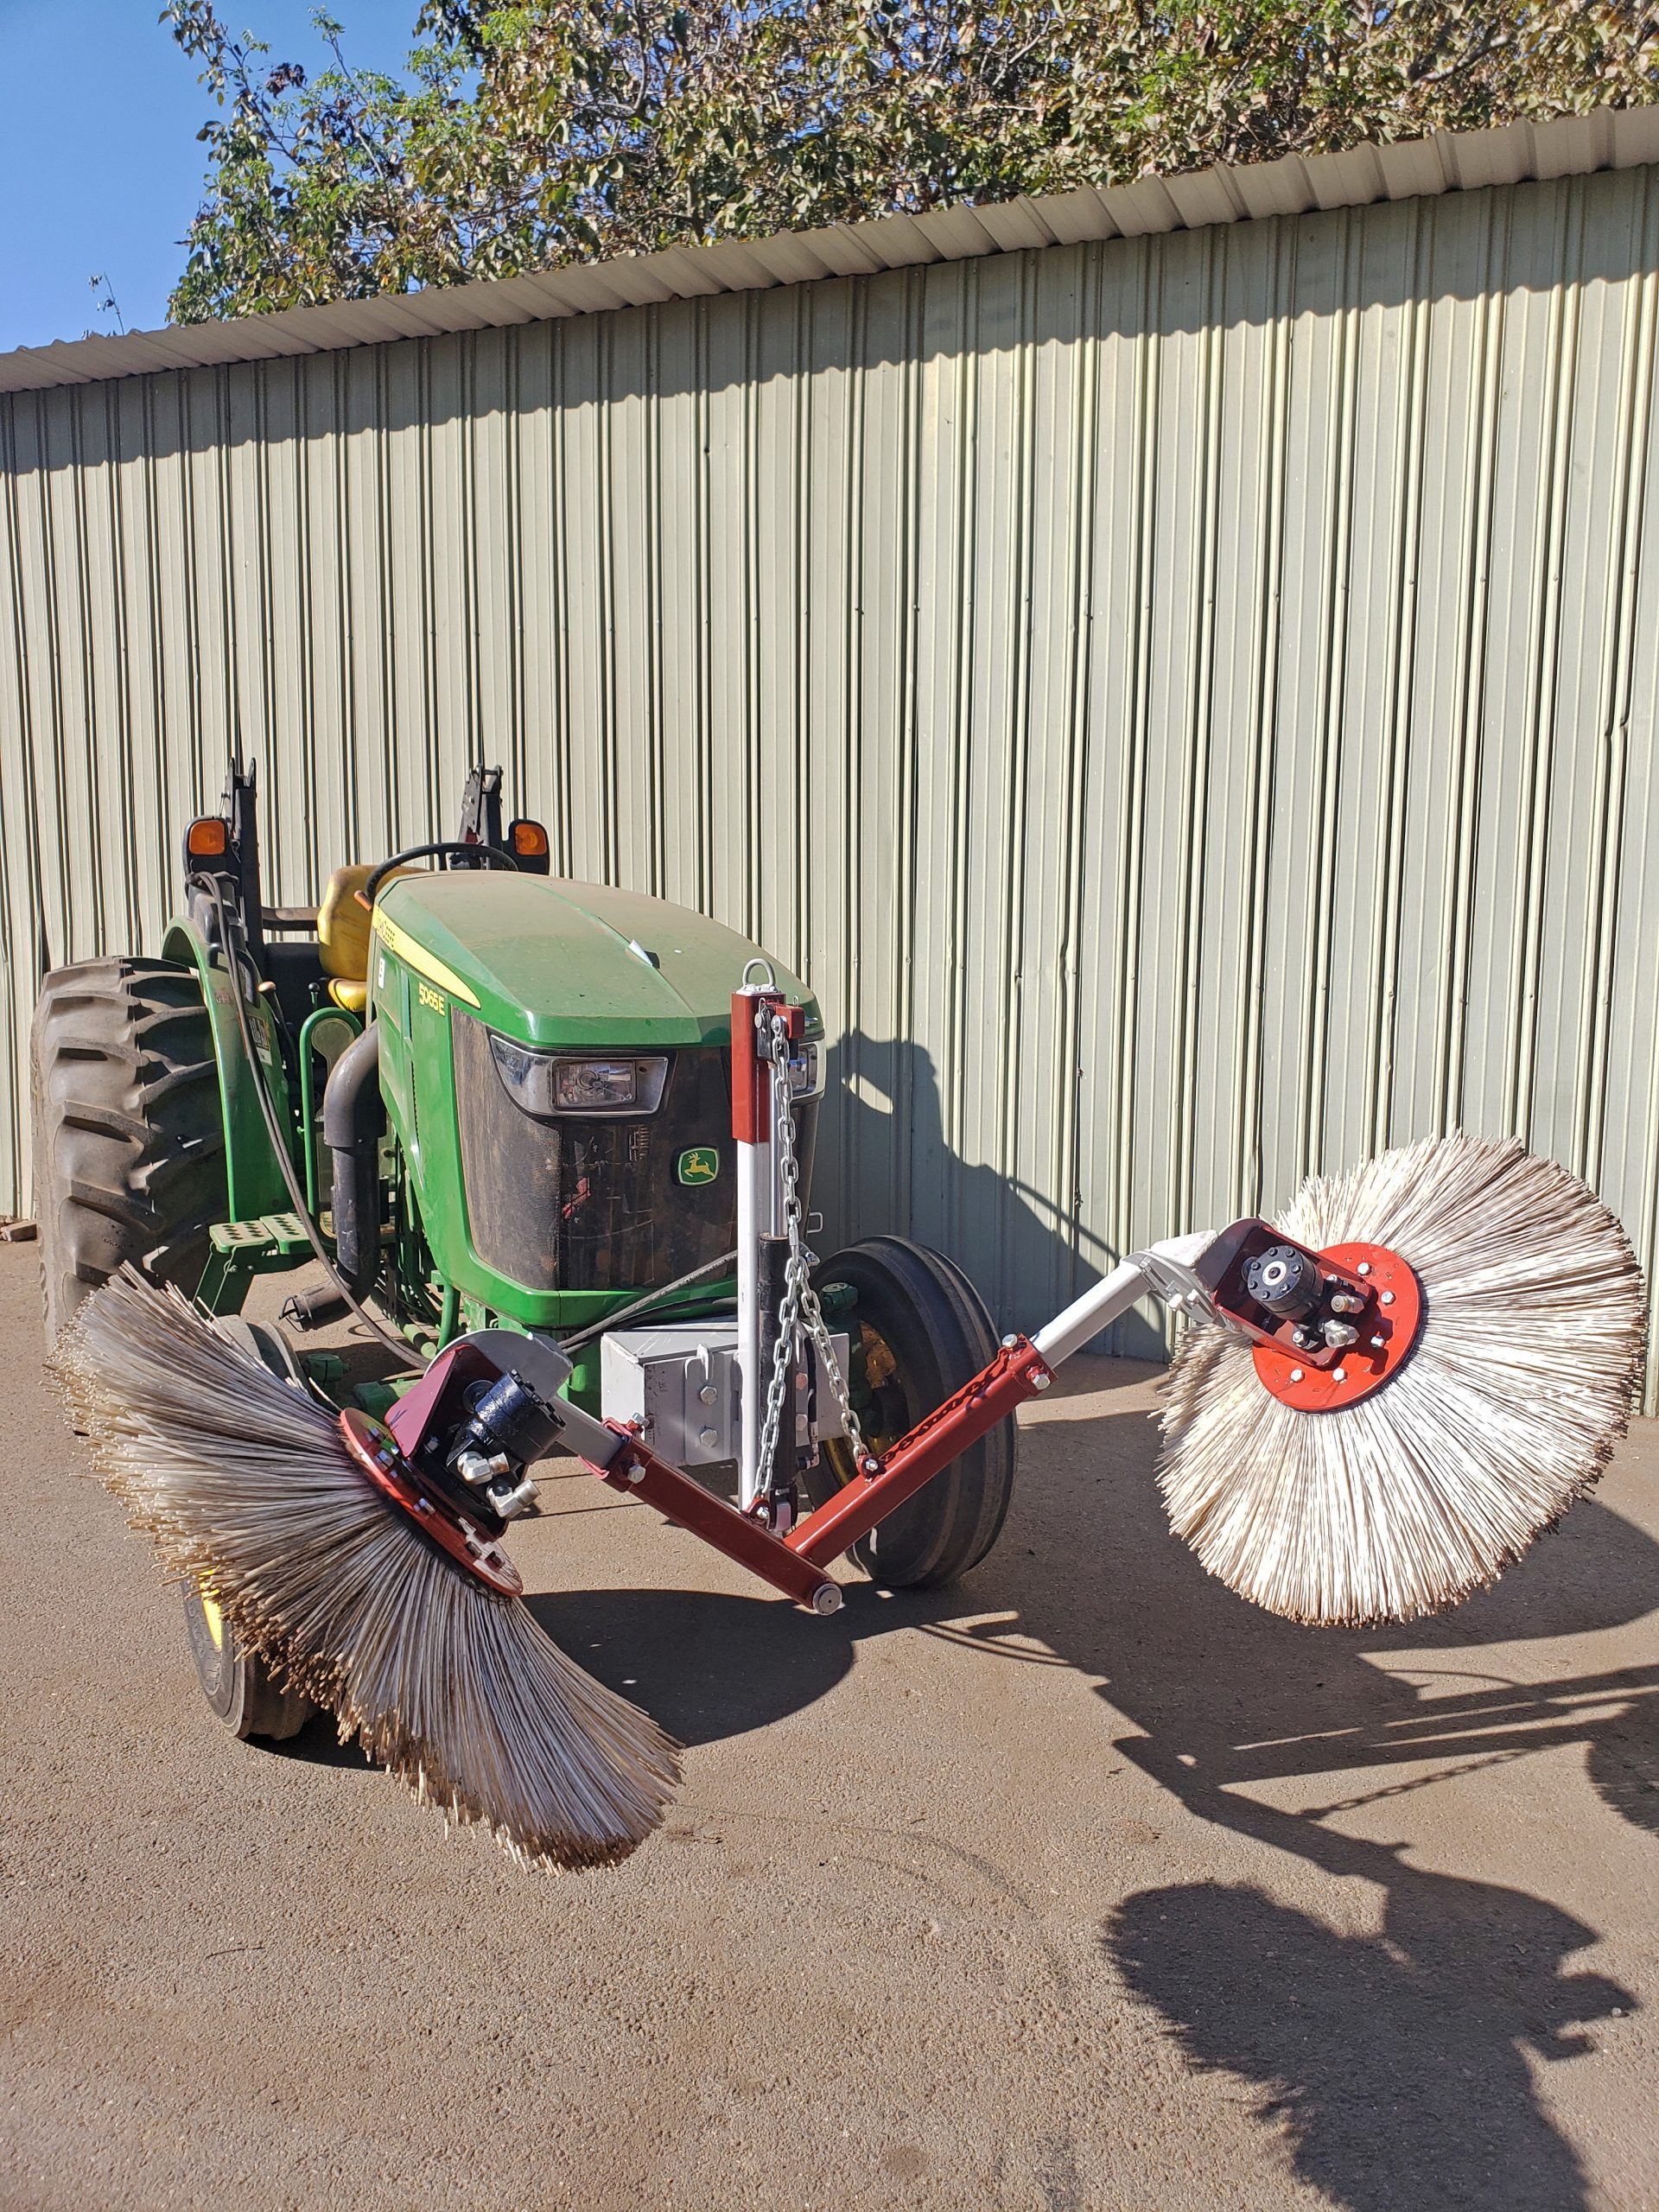 Low pivot frame with bristle brush berm sweepers